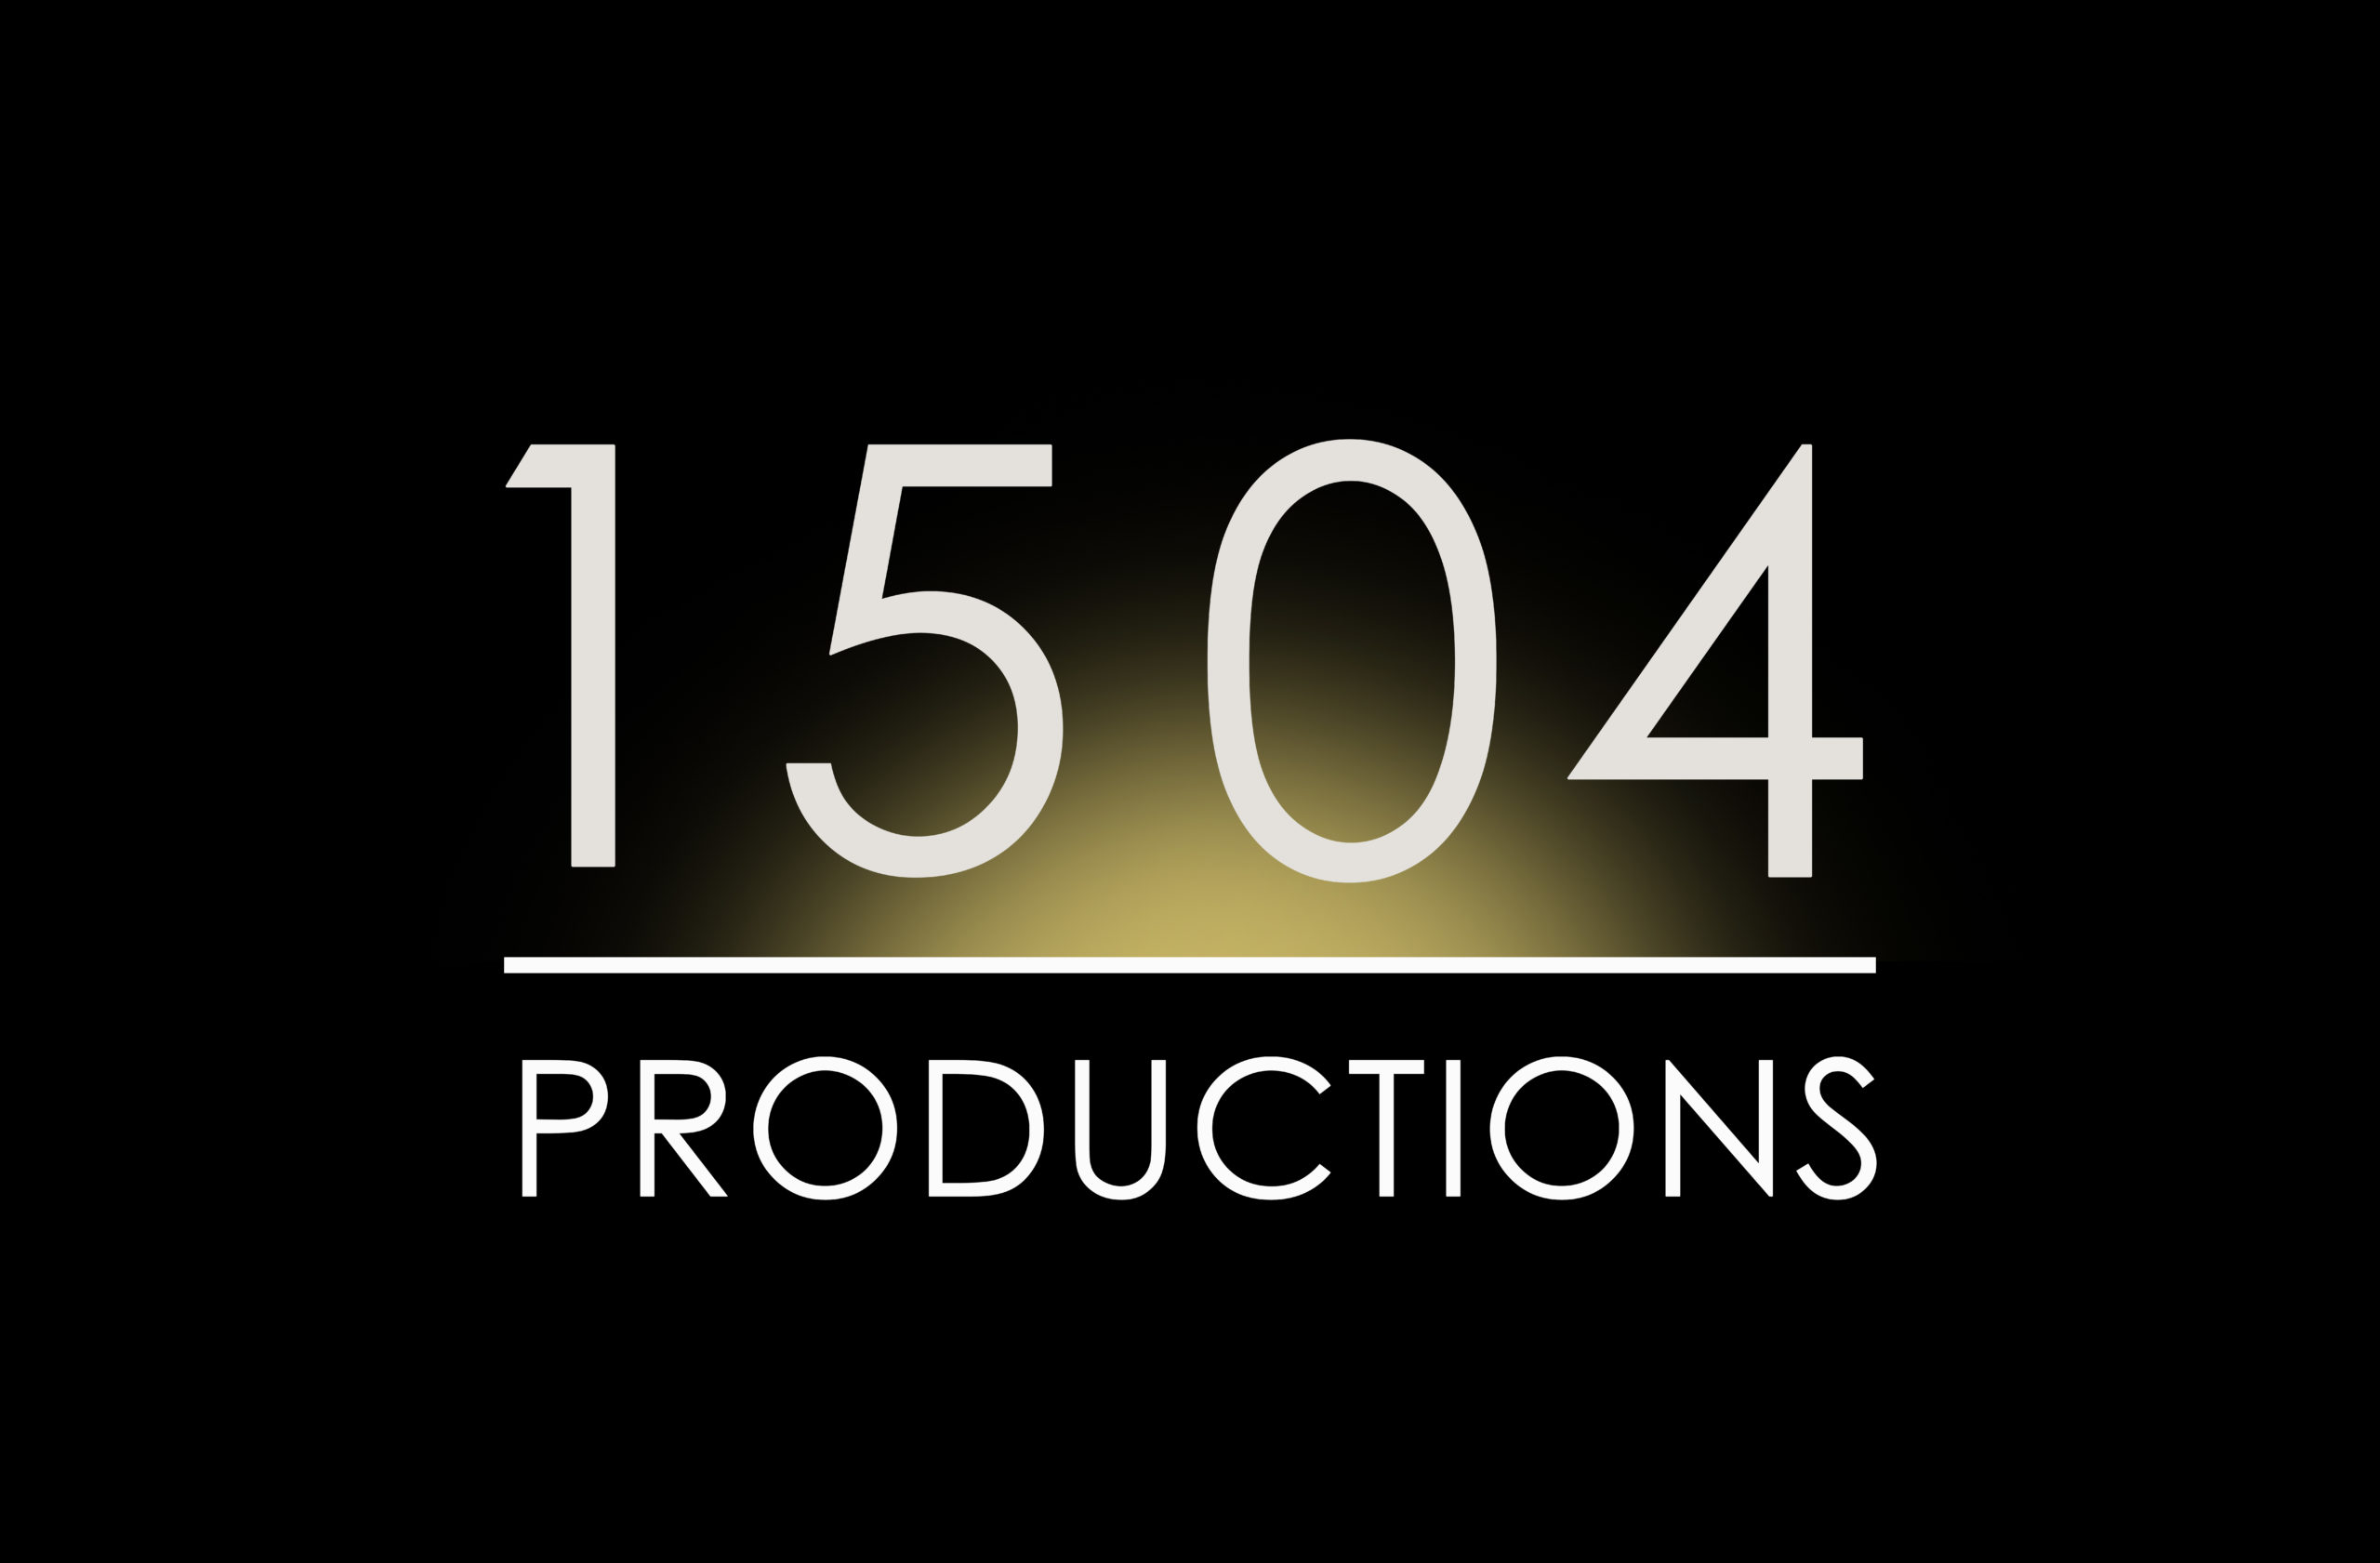 1504 Productions